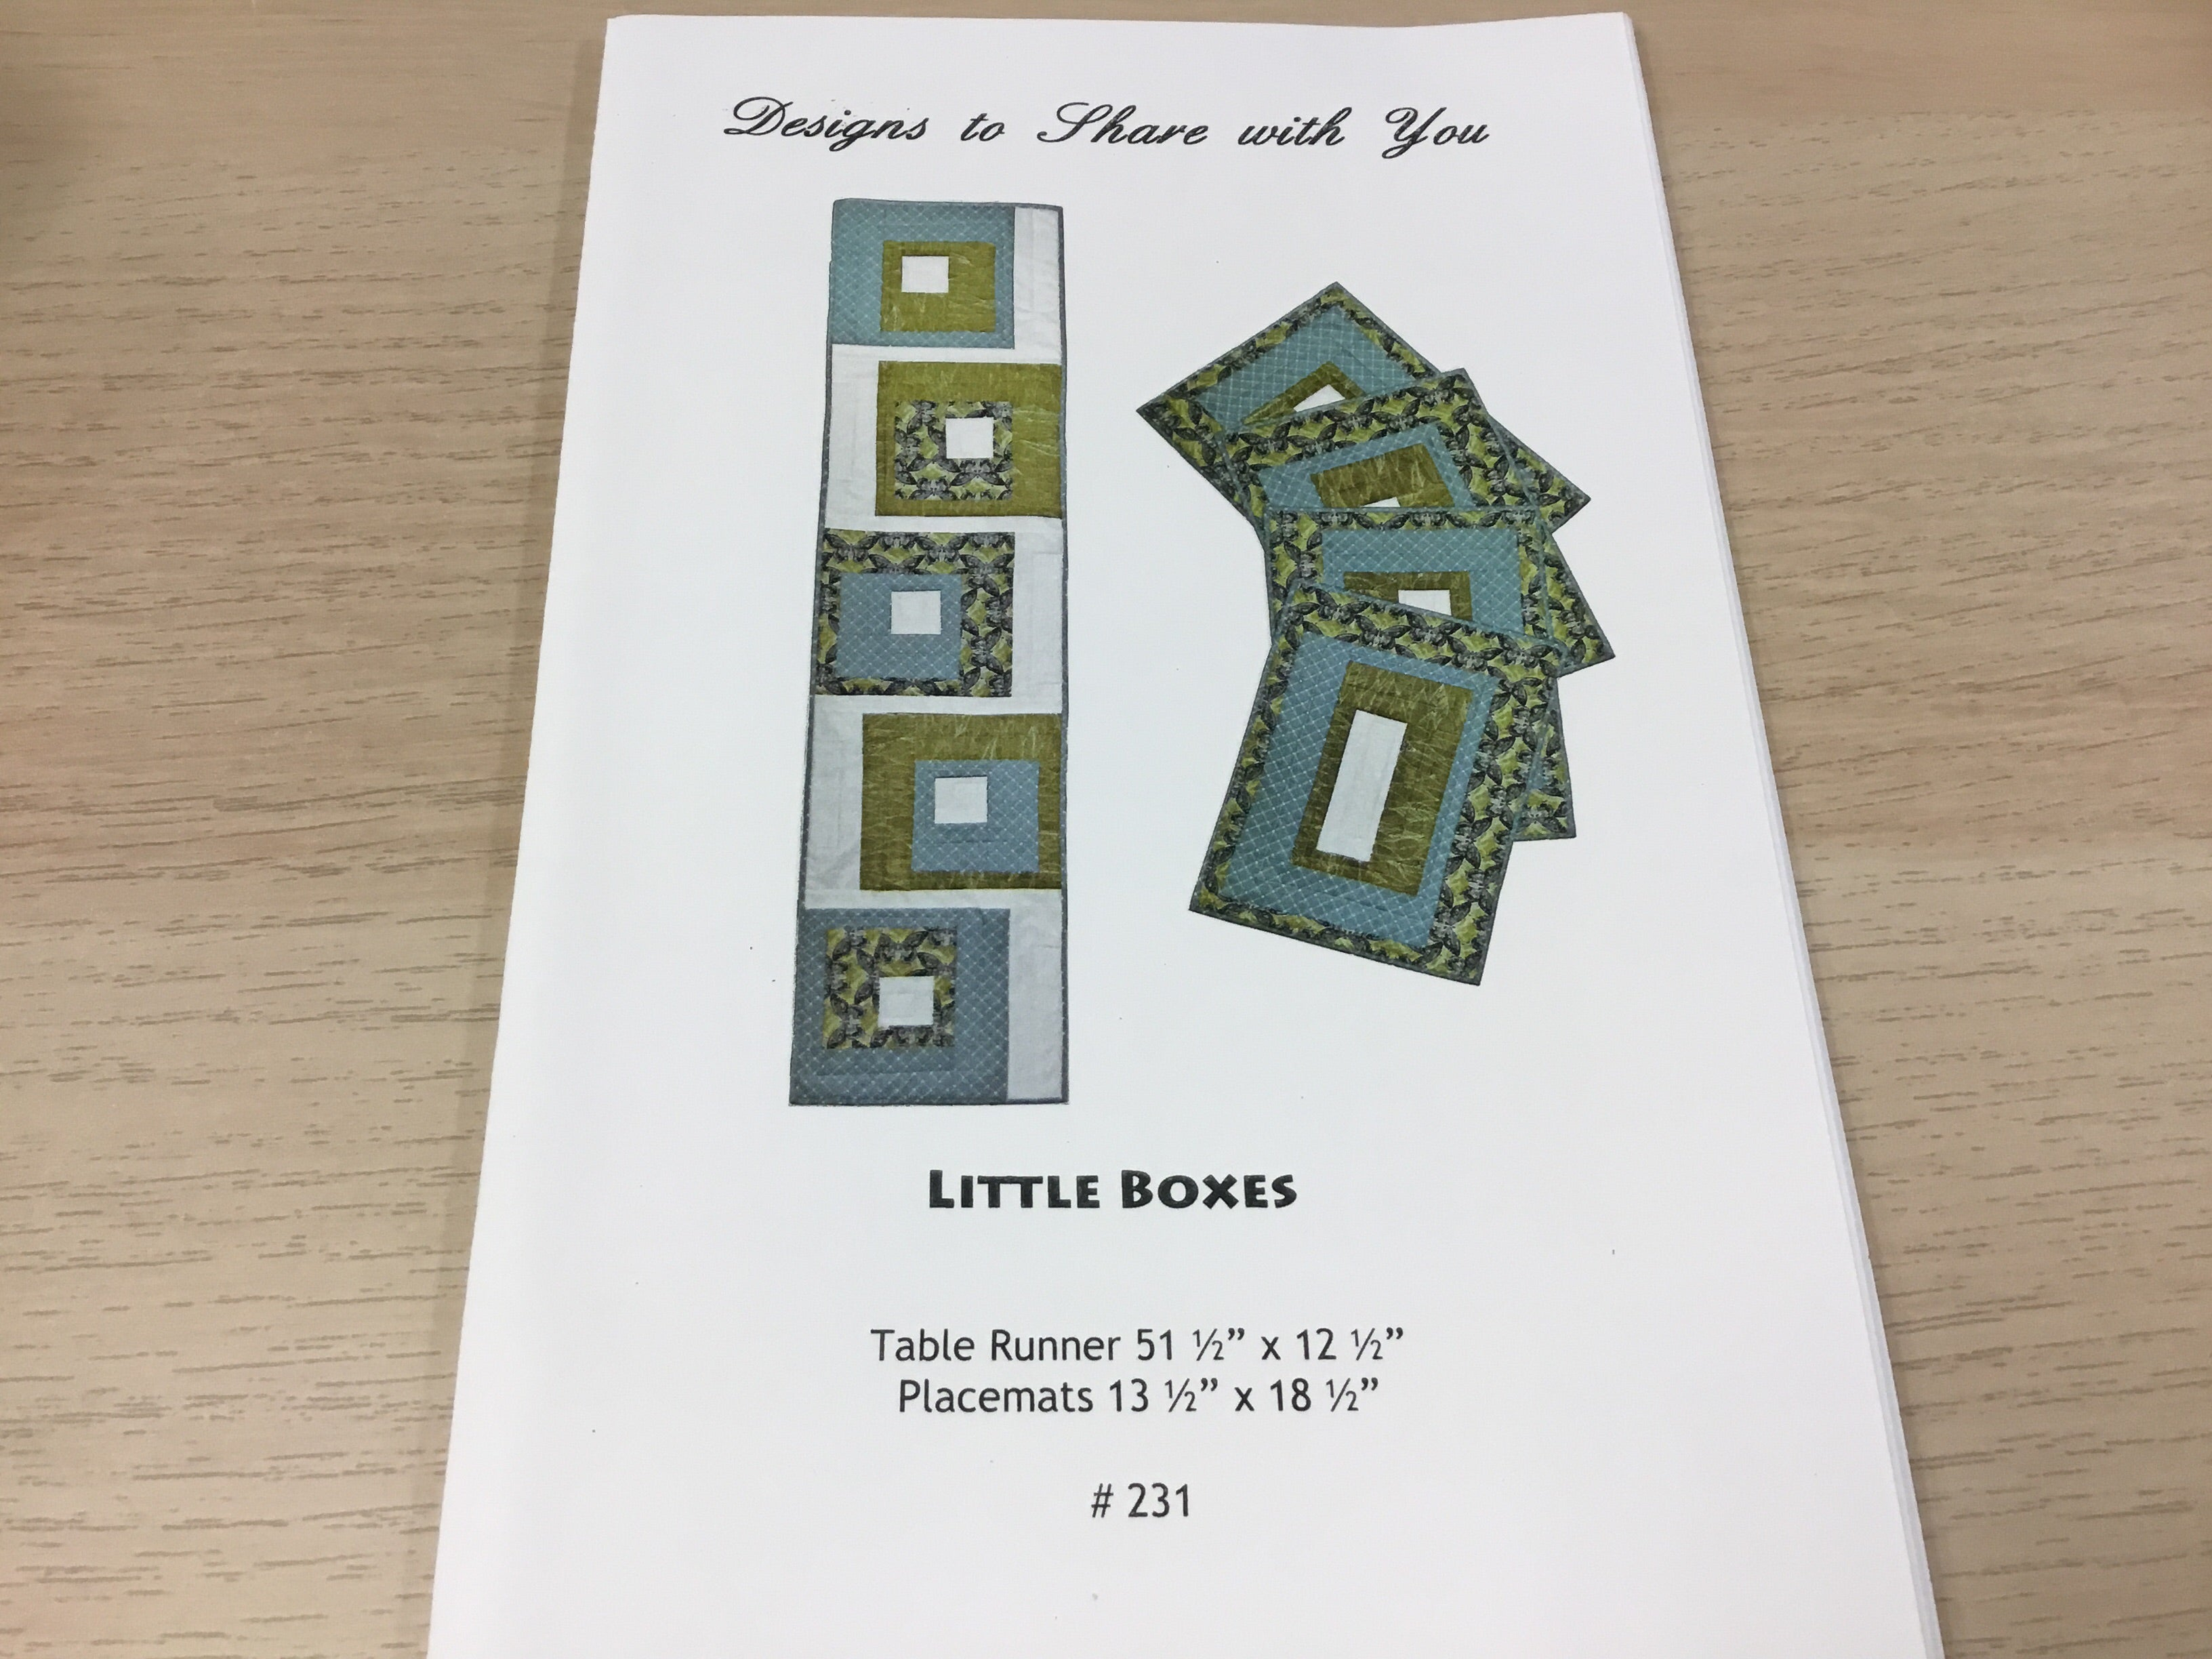 Little Boxes - Designs to share with you - pattern - 231